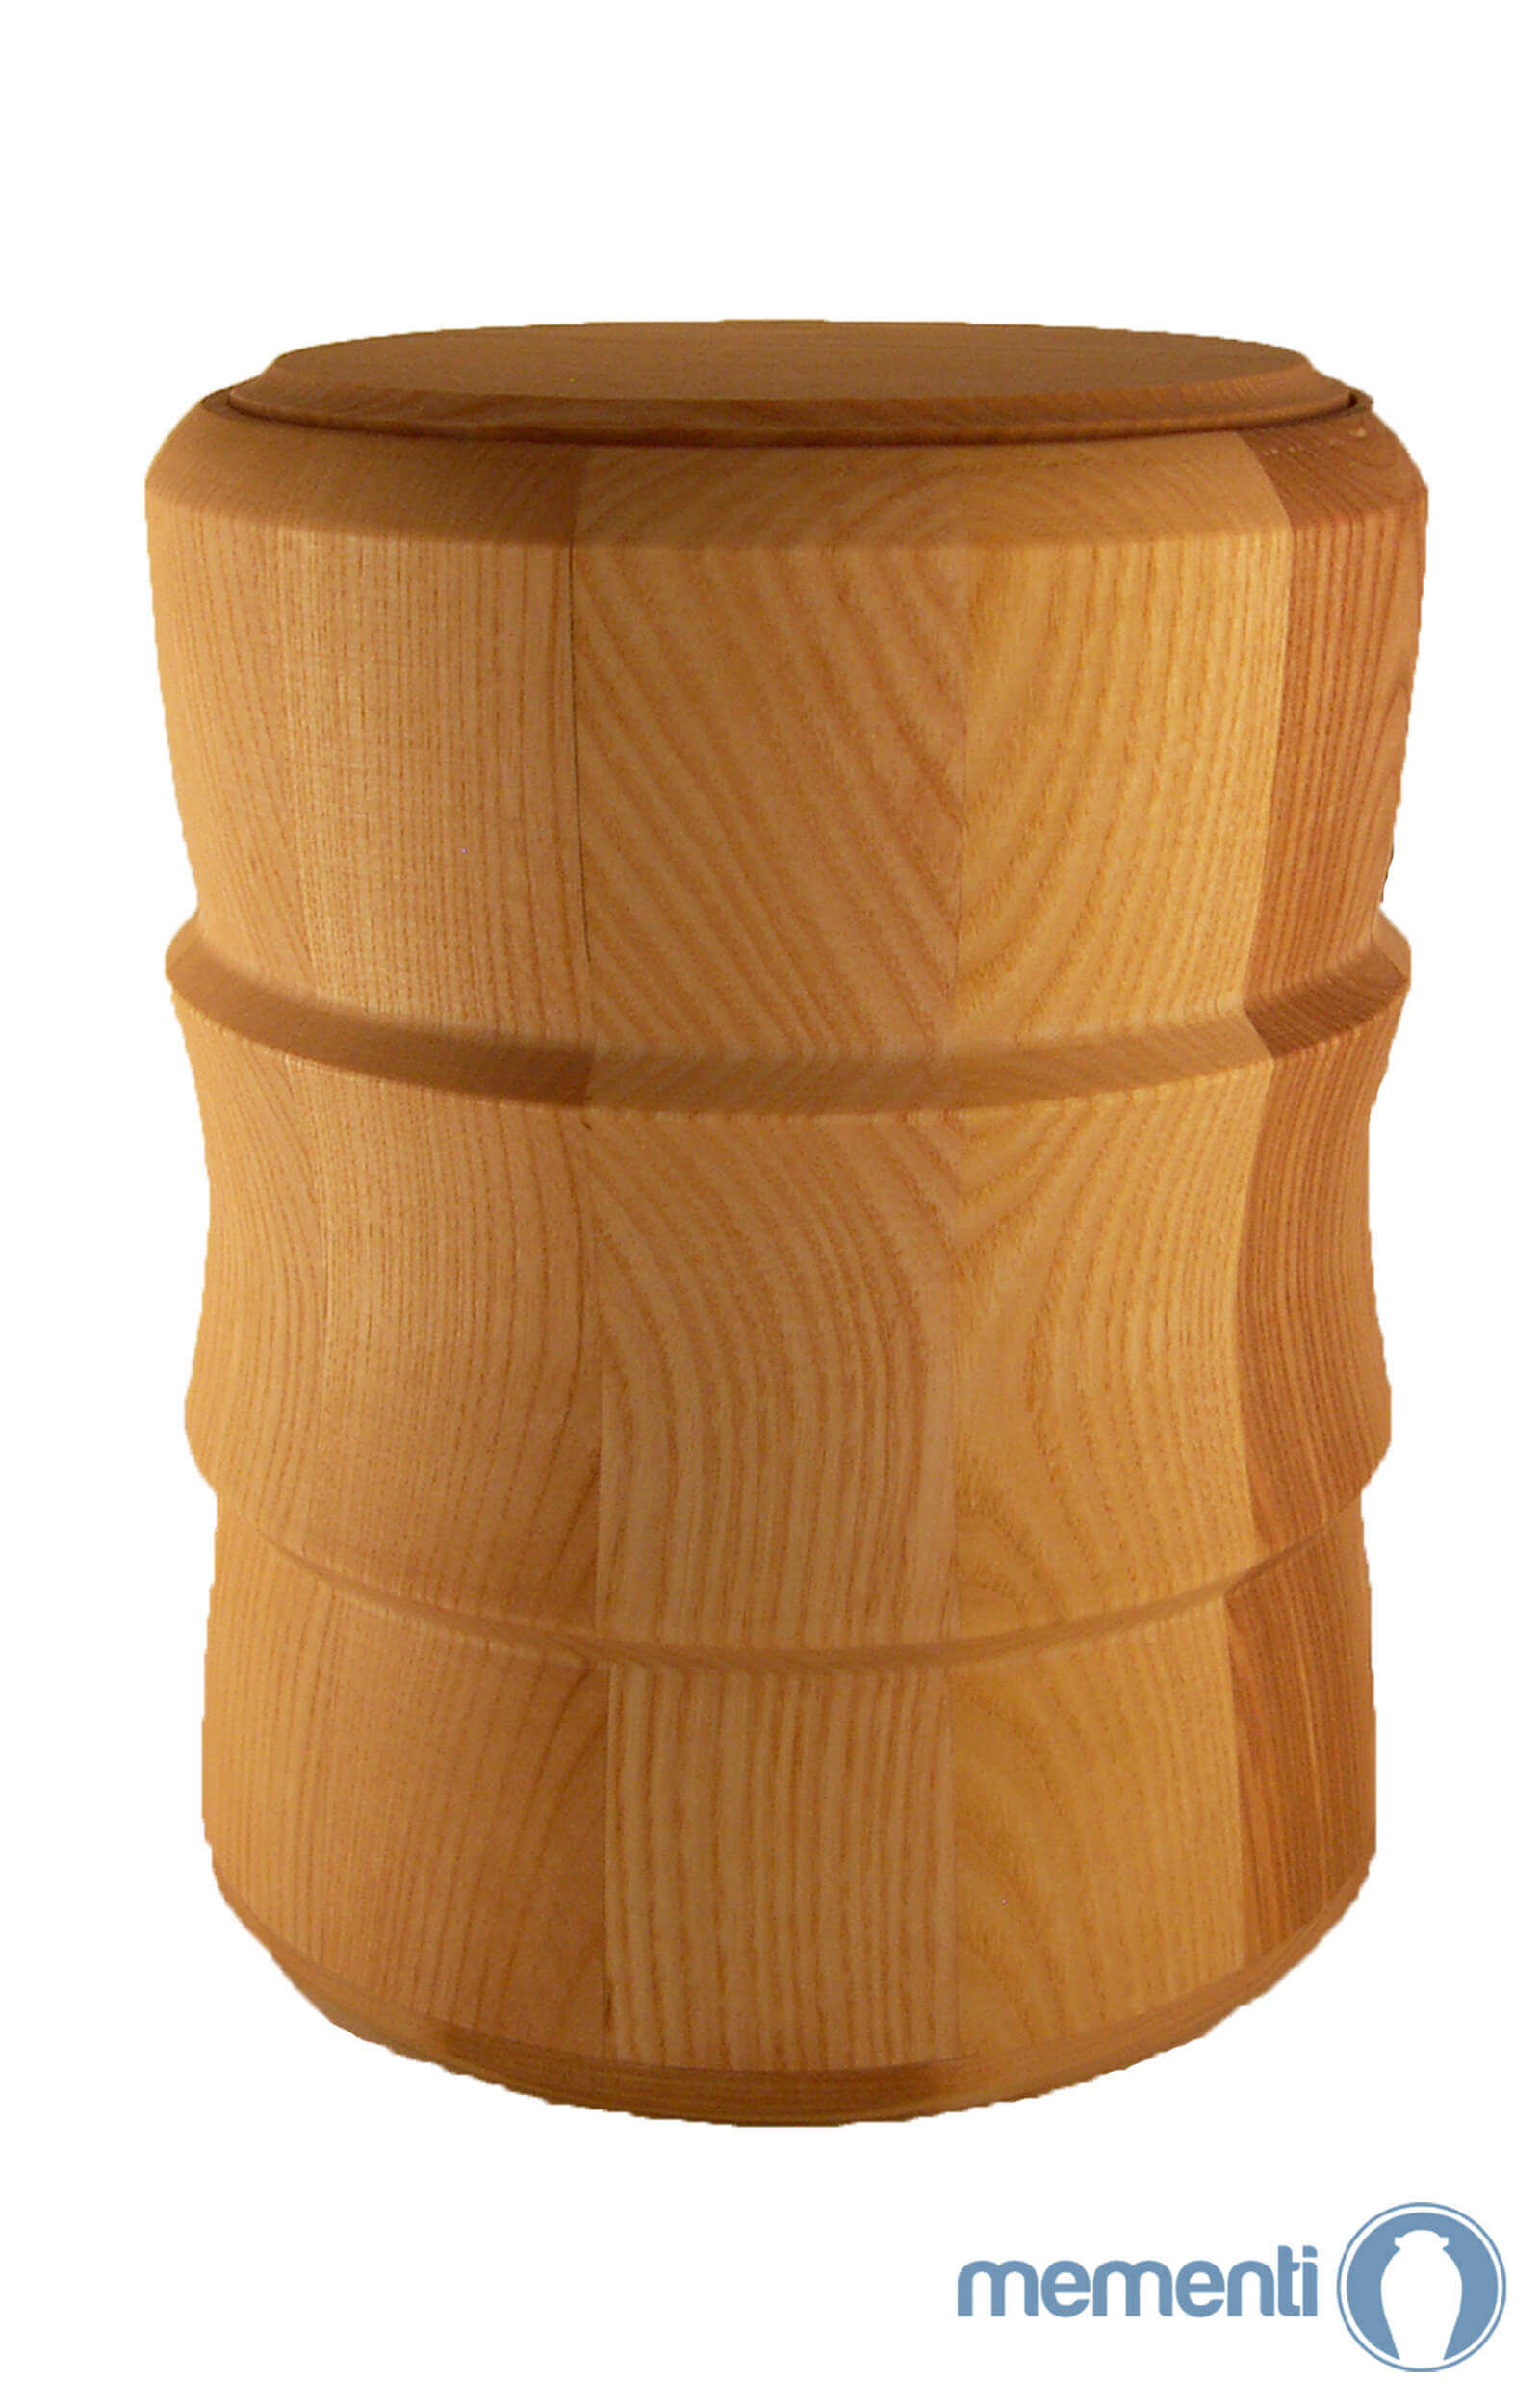 en HR01 ash tree wooden urn